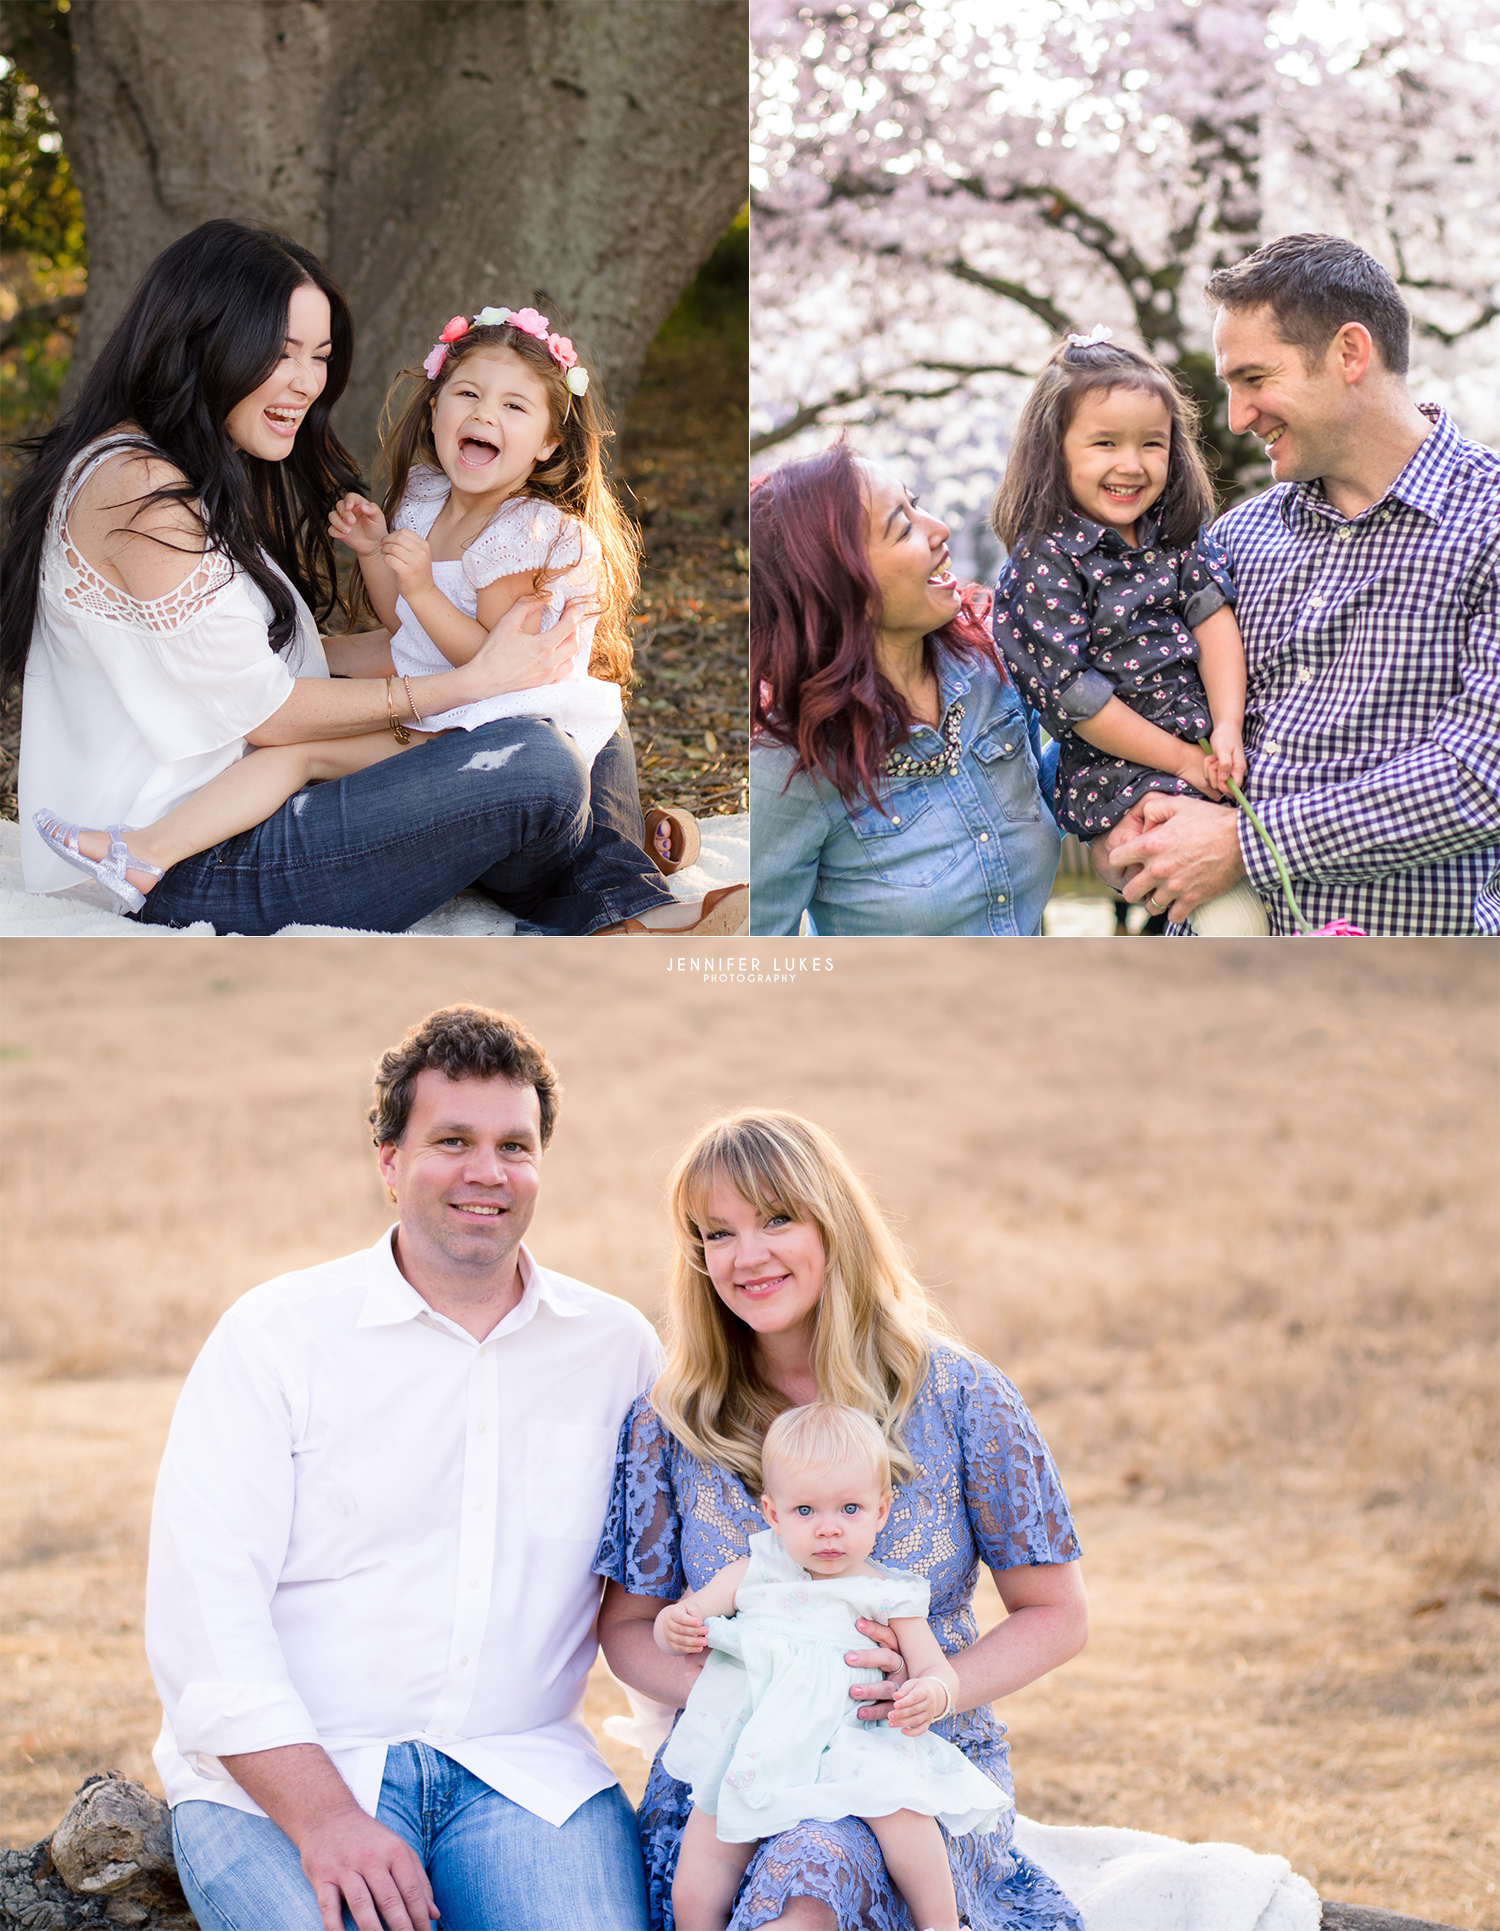 Three family photos showing different photography styles from candid to posed.